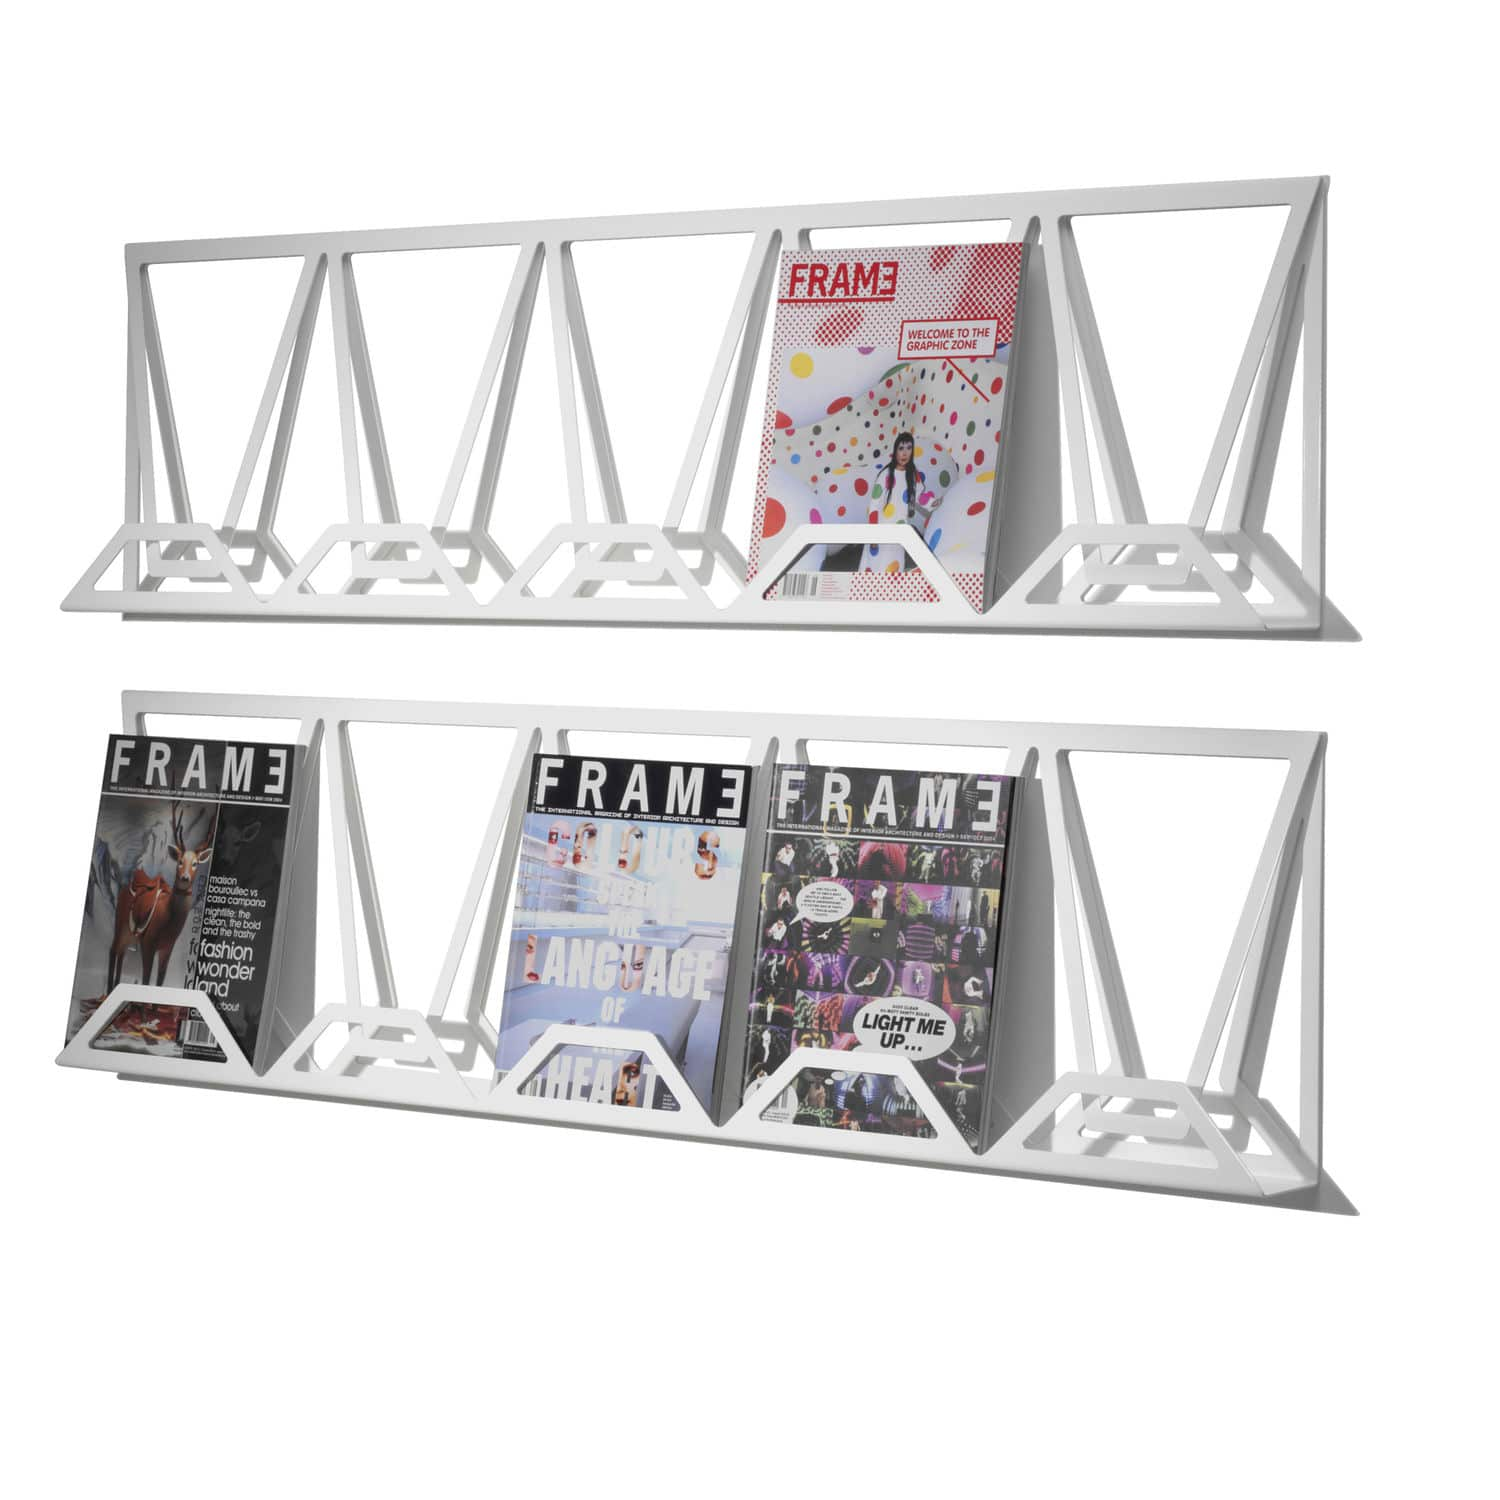 contemporary magazine rack  commercial  metal  xhibit  mitab - contemporary magazine rack  commercial  metal  xhibit